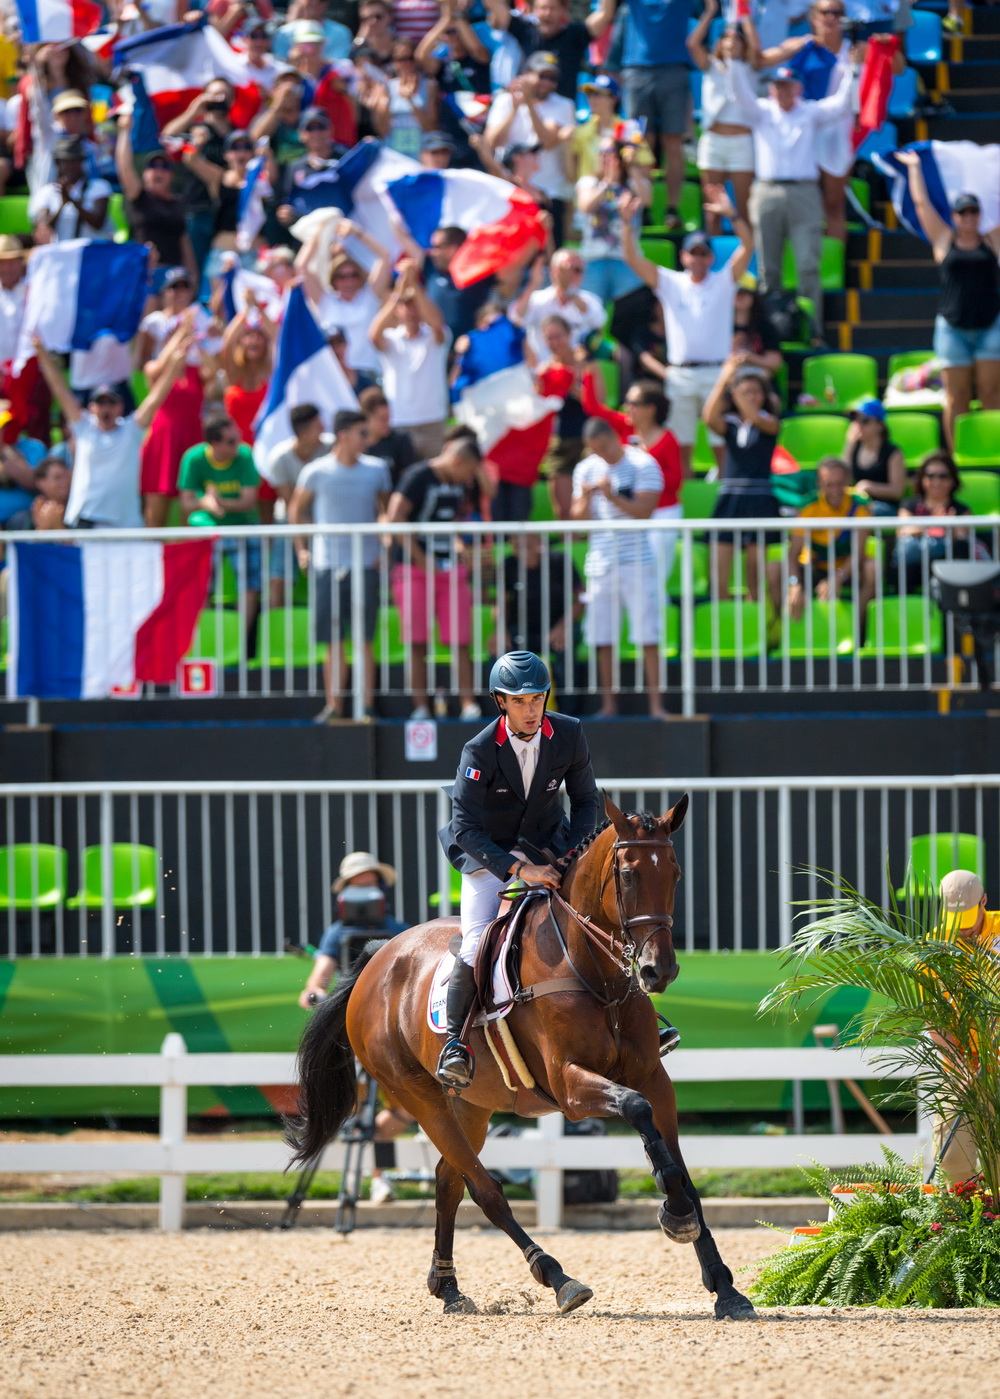 A crucial clear showjumping round from Astier Nicolas and Piaf de B'Neville clinched team gold for France in the Eventing Team Final at Deodoro today, the first gold medal of the Rio 2016 Games for France and only the second medal overall.  © Arnd Bronkhorst/FEI